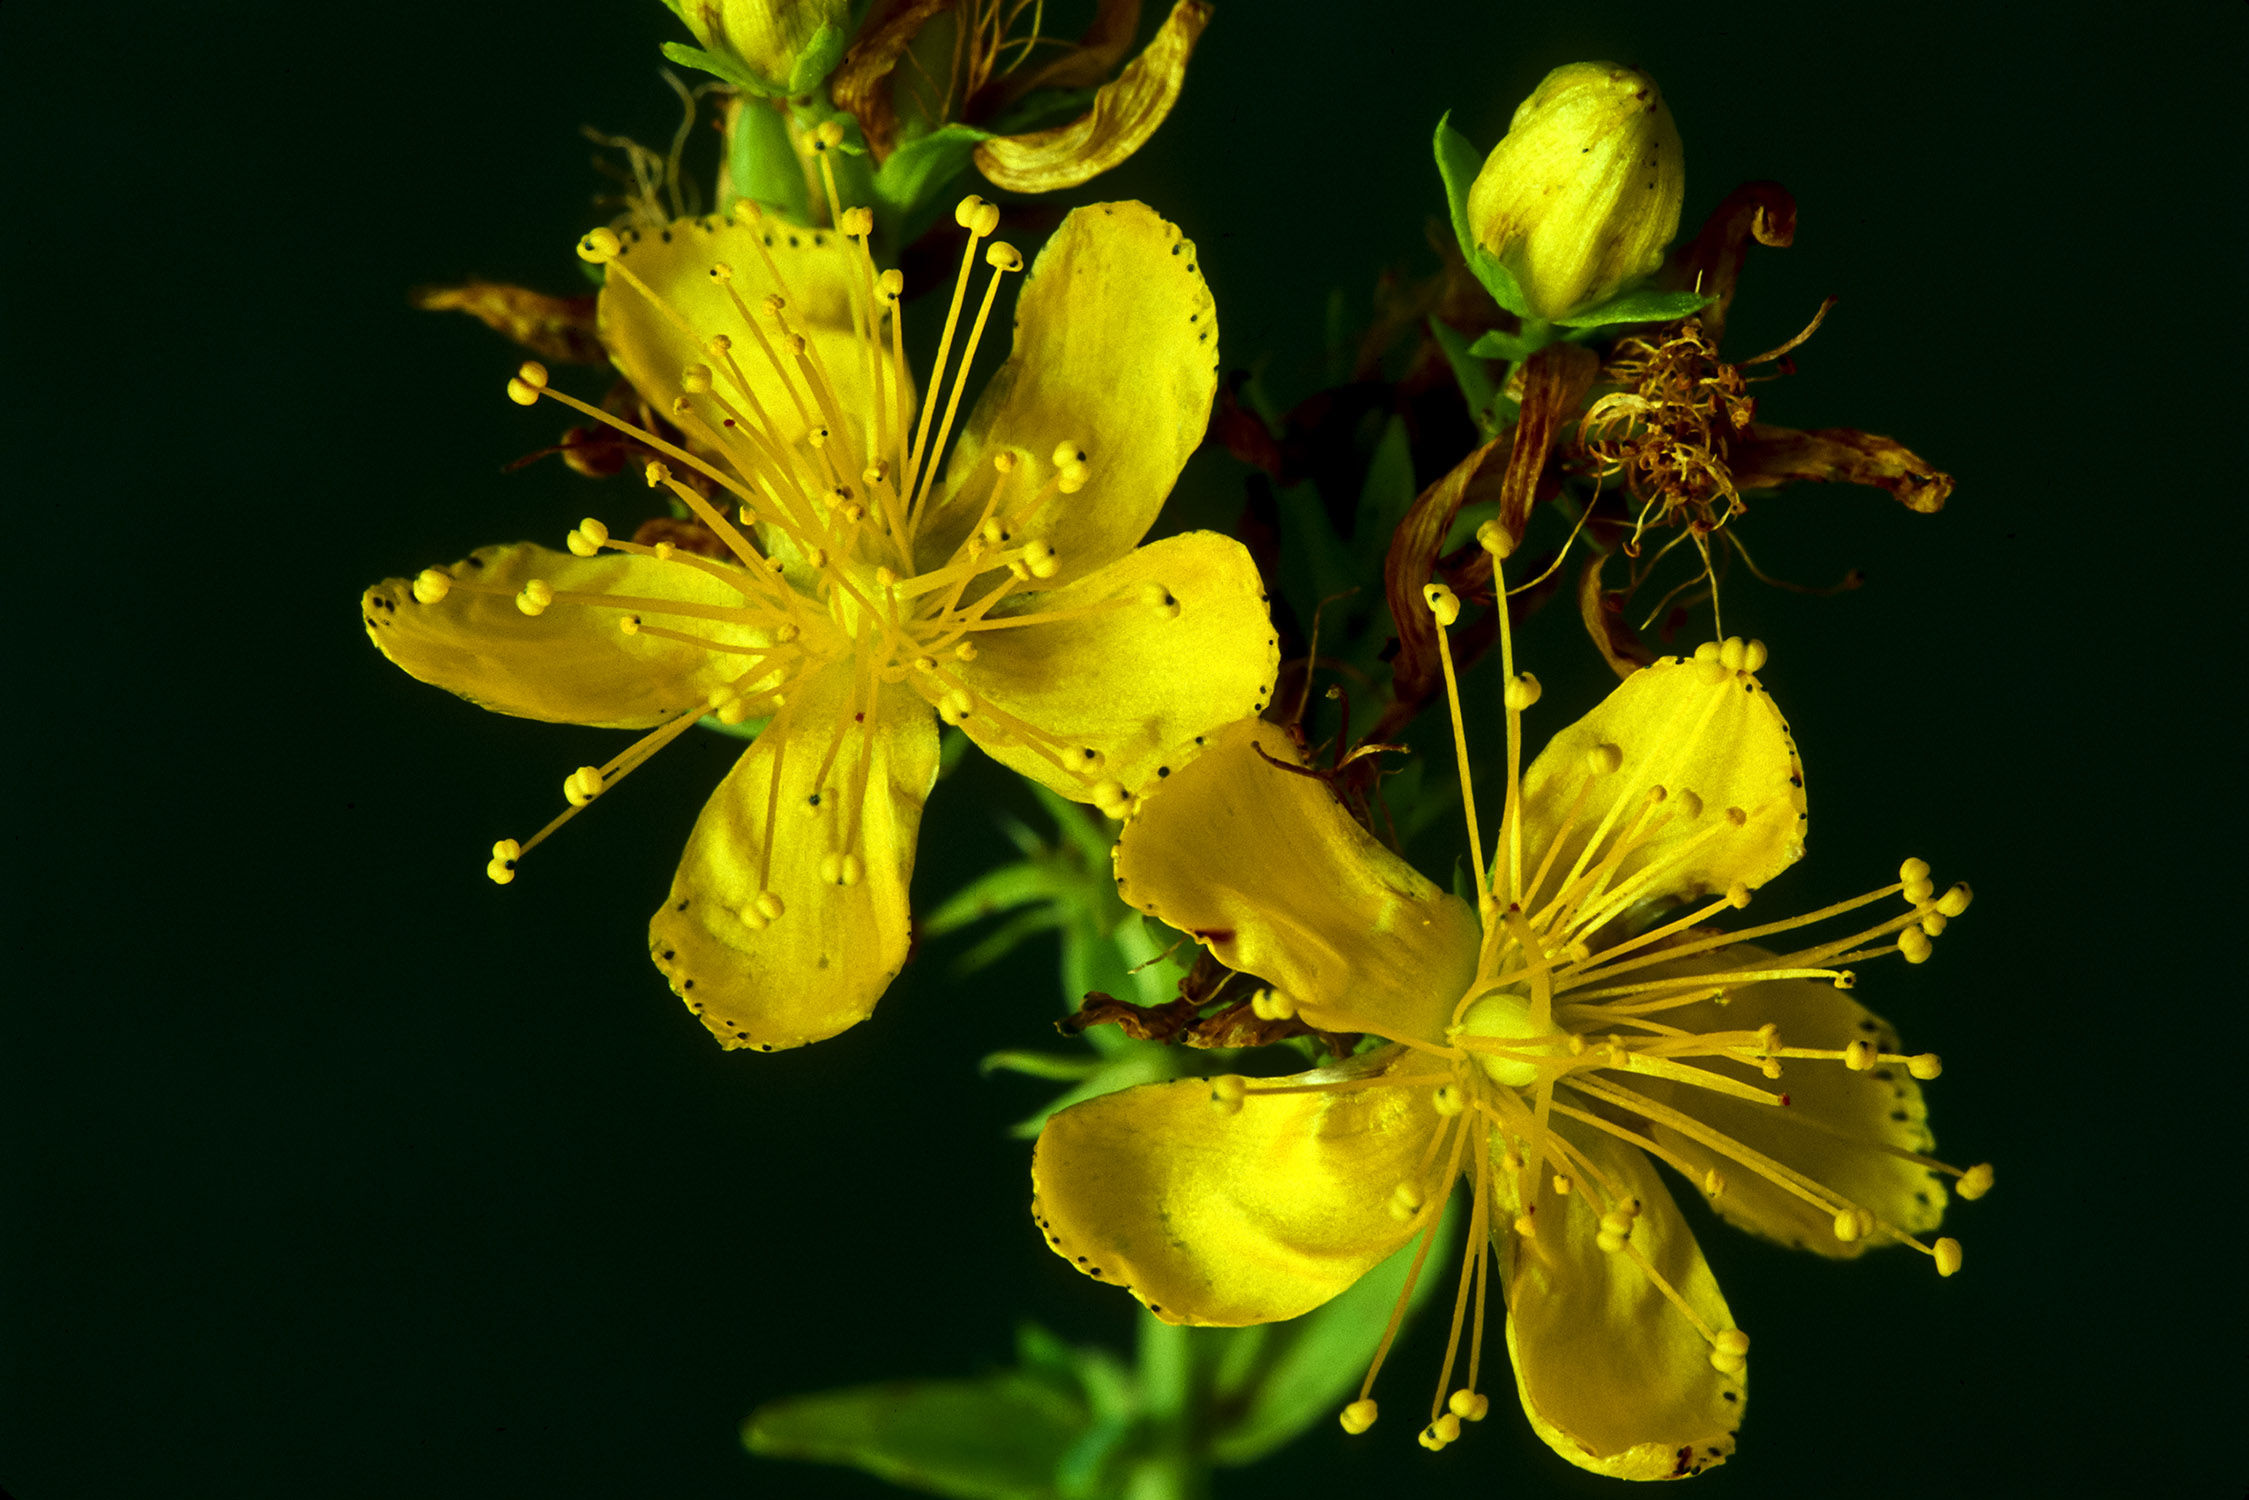 st john s wort 2015-06-23  are hip and st john's wort related 58 posts from all over the web from people who wrote about hip and st john's wort - page 3.